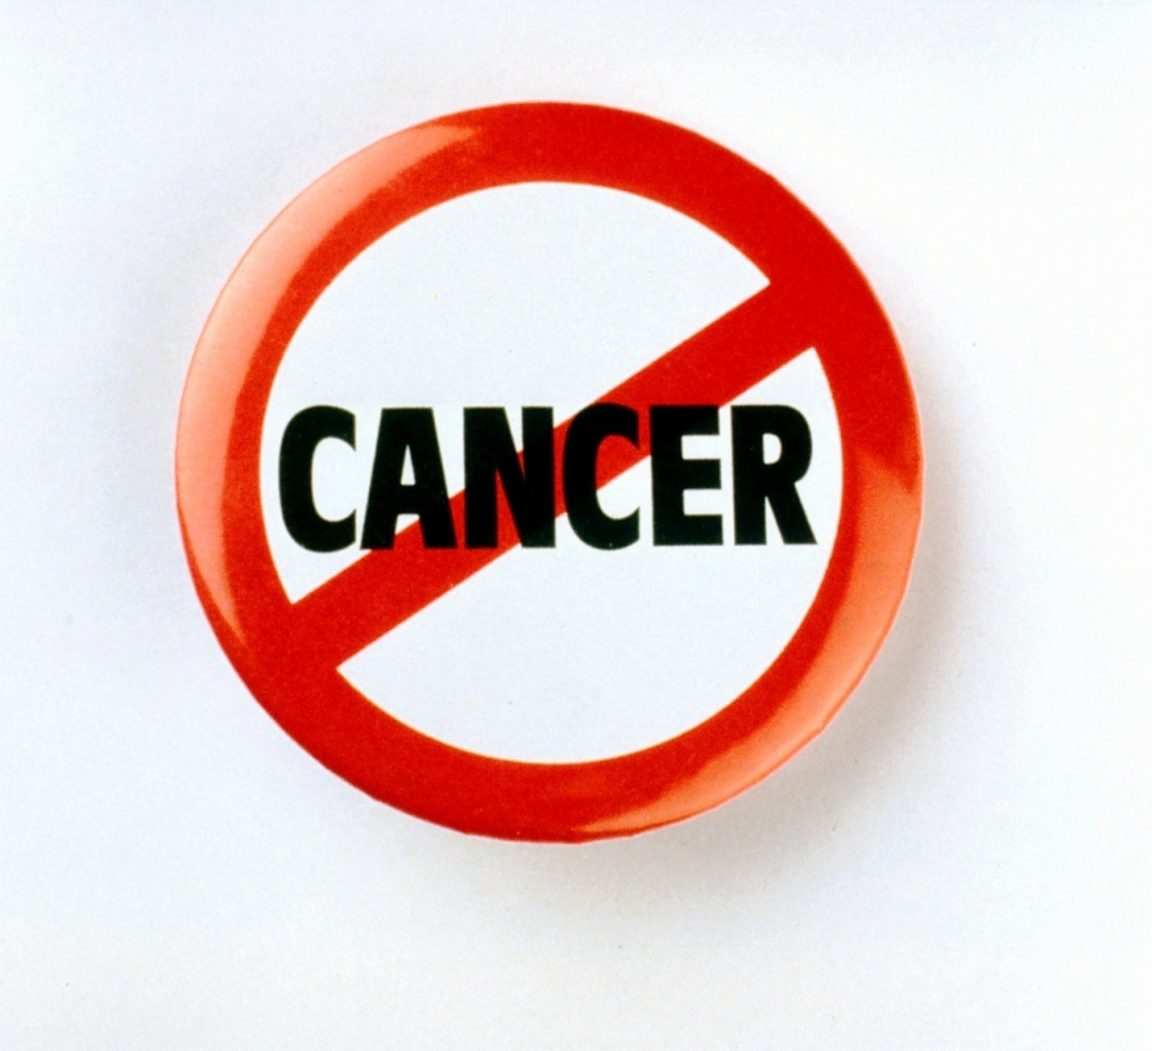 What Kind of Cancer Does Zantac Cause?